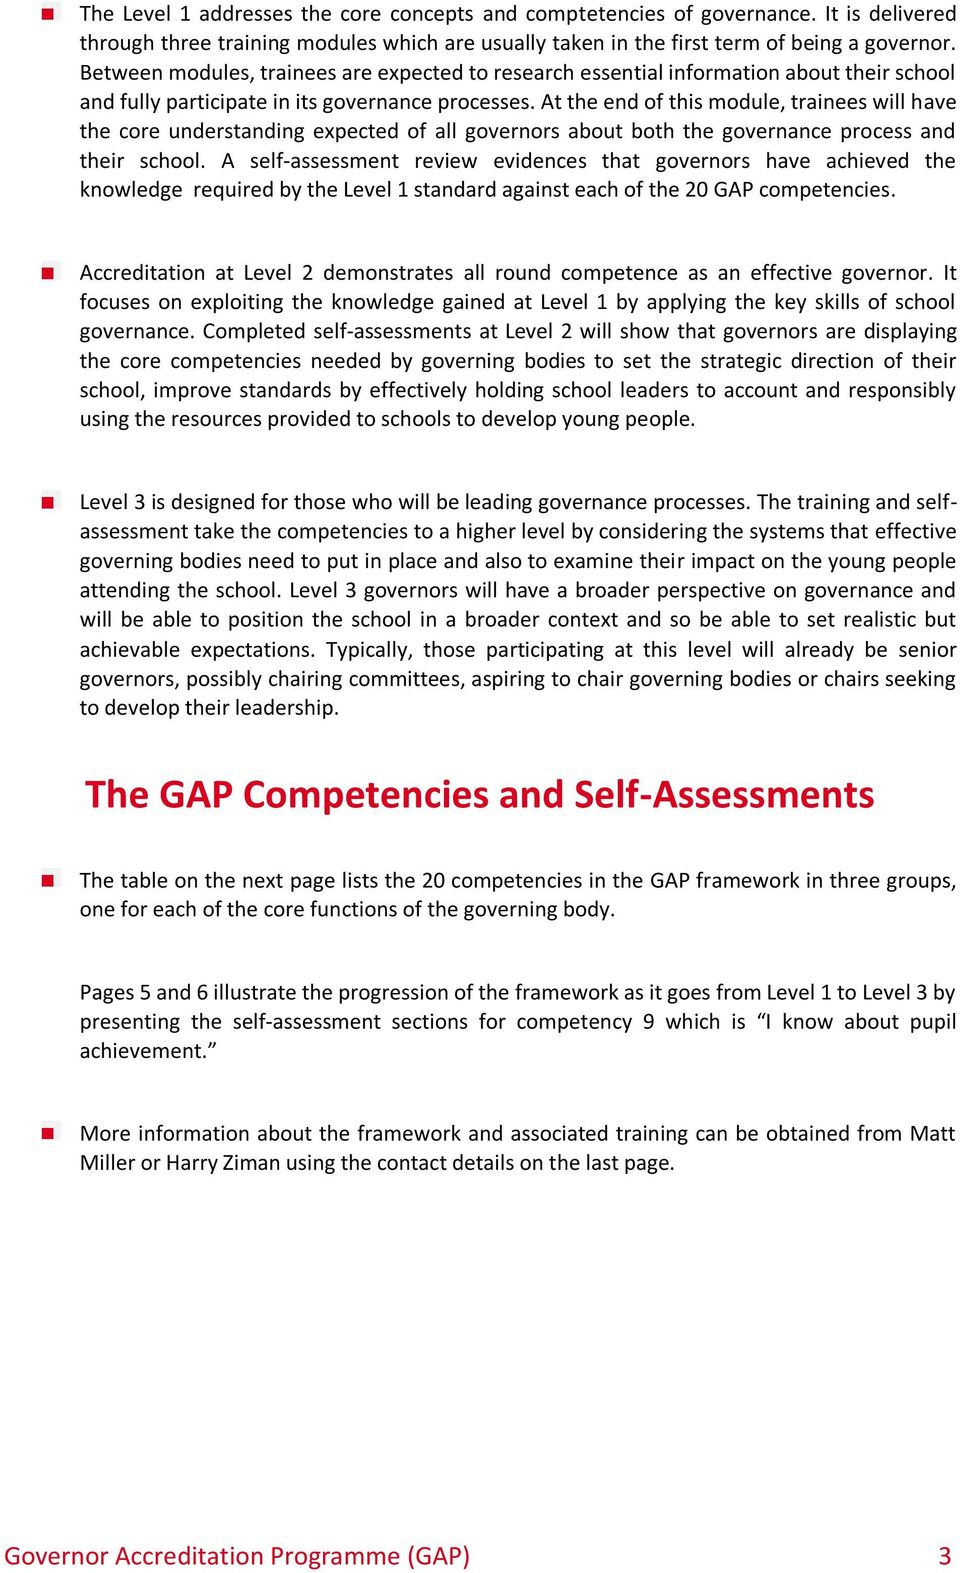 At the end of this module, trainees will have the core understanding expected of all governors about both the governance process and their school.